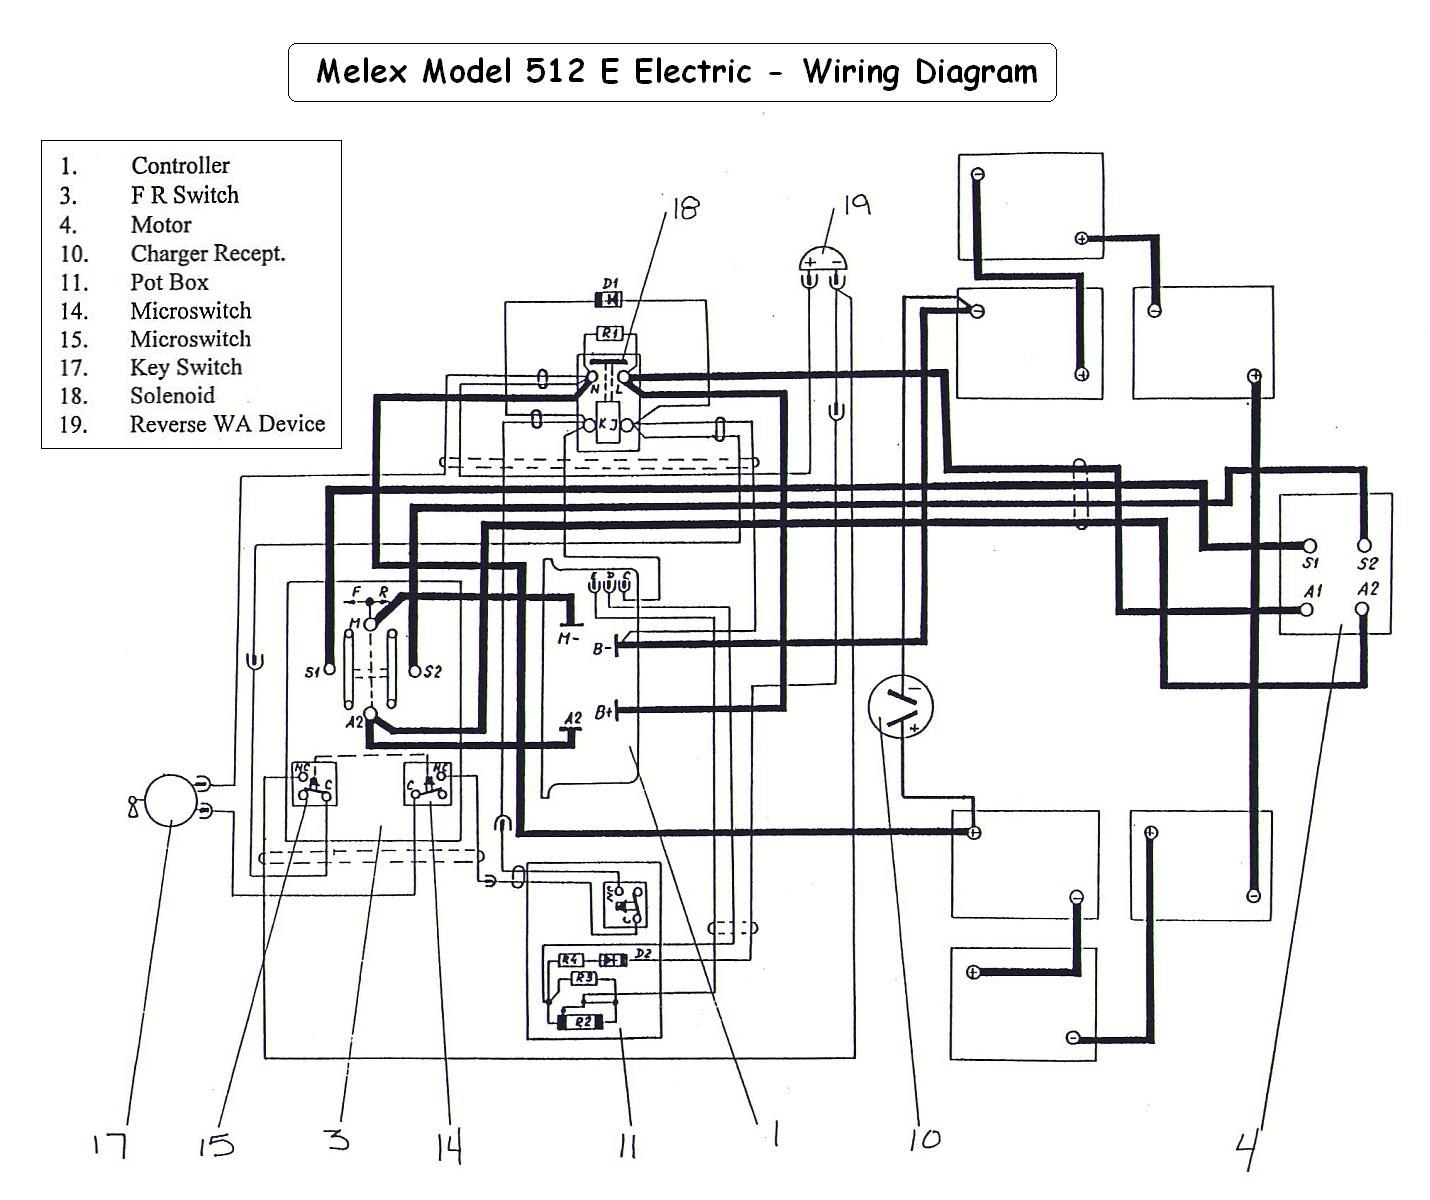 Melex512E_wiring_diagram vintagegolfcartparts com westinghouse golf cart wiring diagram at panicattacktreatment.co